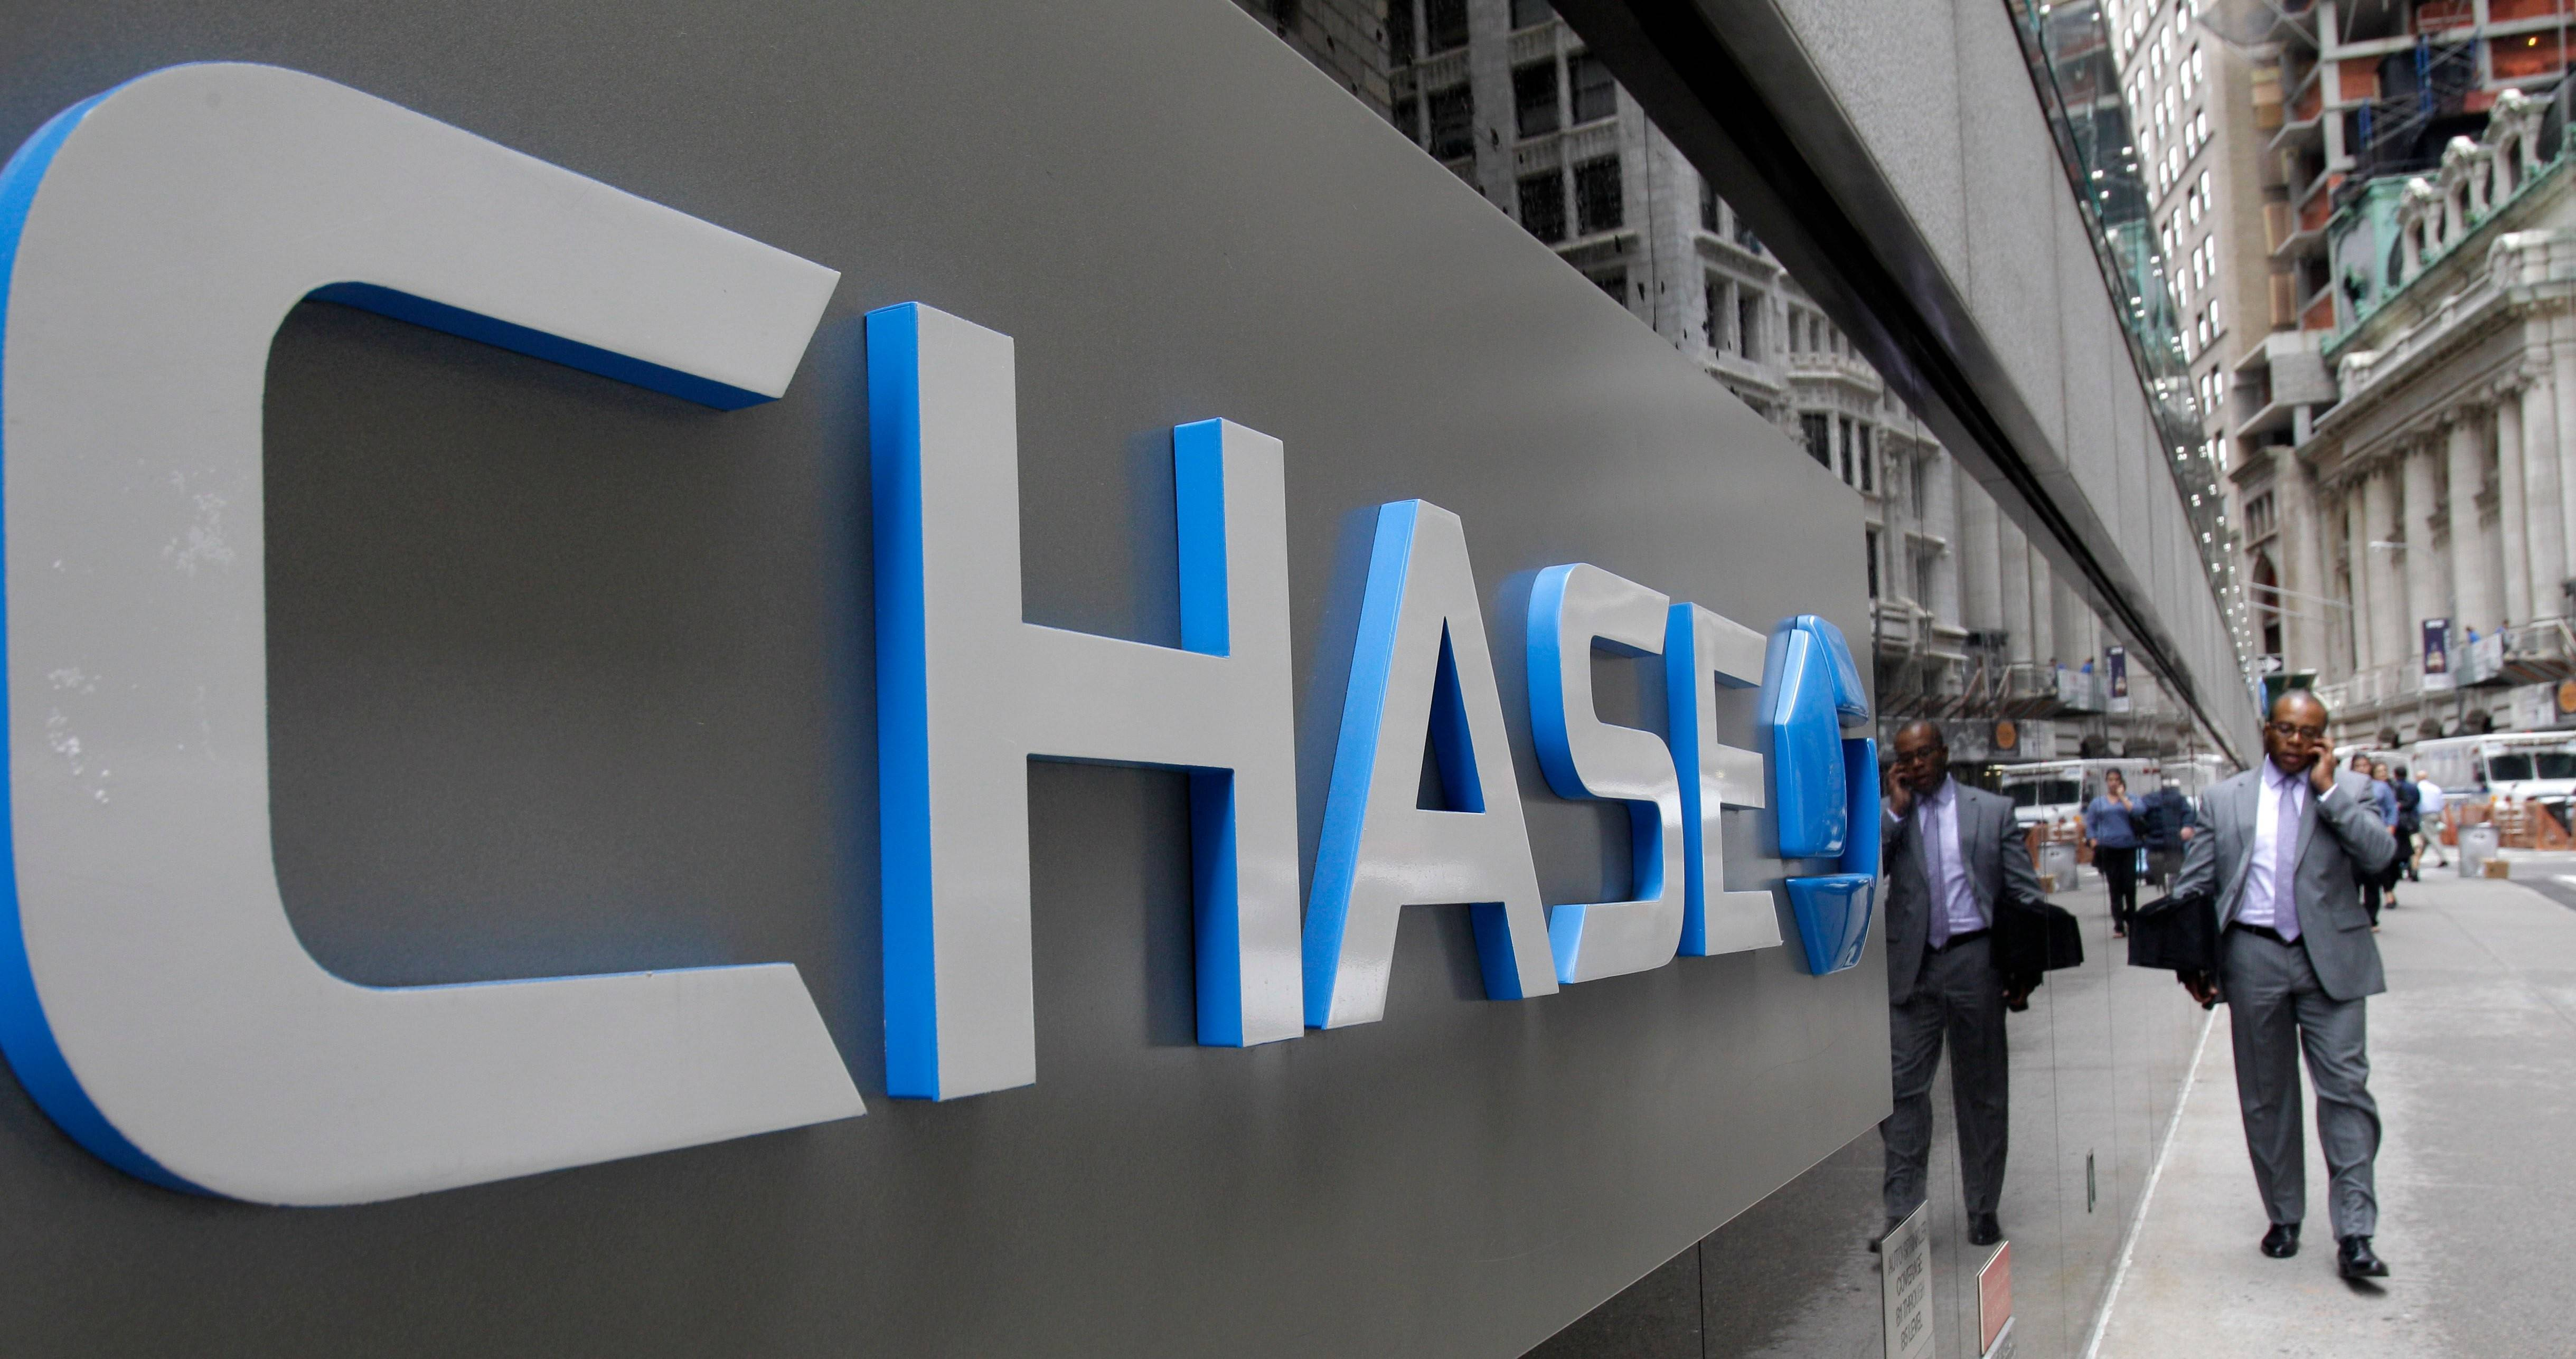 JPMorgan Chase & Co., the biggest U.S. bank, said it increased defenses against computer hackers after an attack against the industry this month.